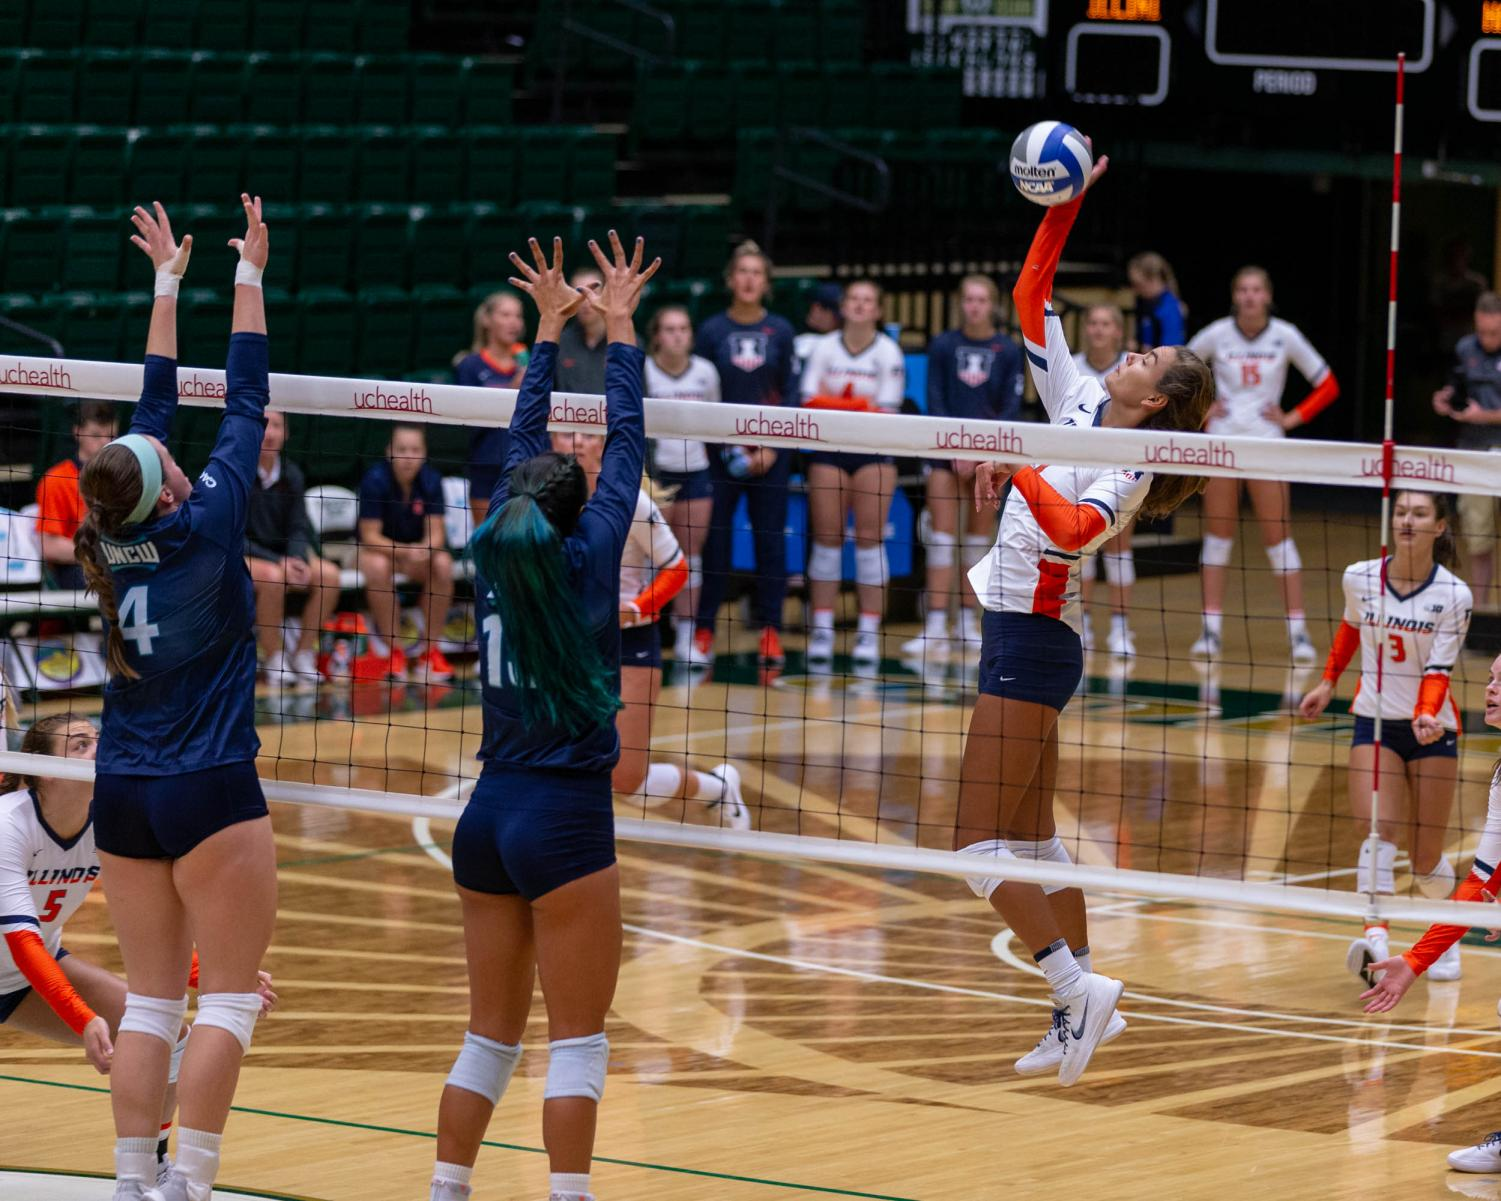 Illinois volleyball played against the University of North Carolina-Wilmington at the Colorado State Torunament on Friday. The Illini won 3-0 and went on to sweep the tourney as the team looks to expand on a 2017 season that took them to the Sweet 16.